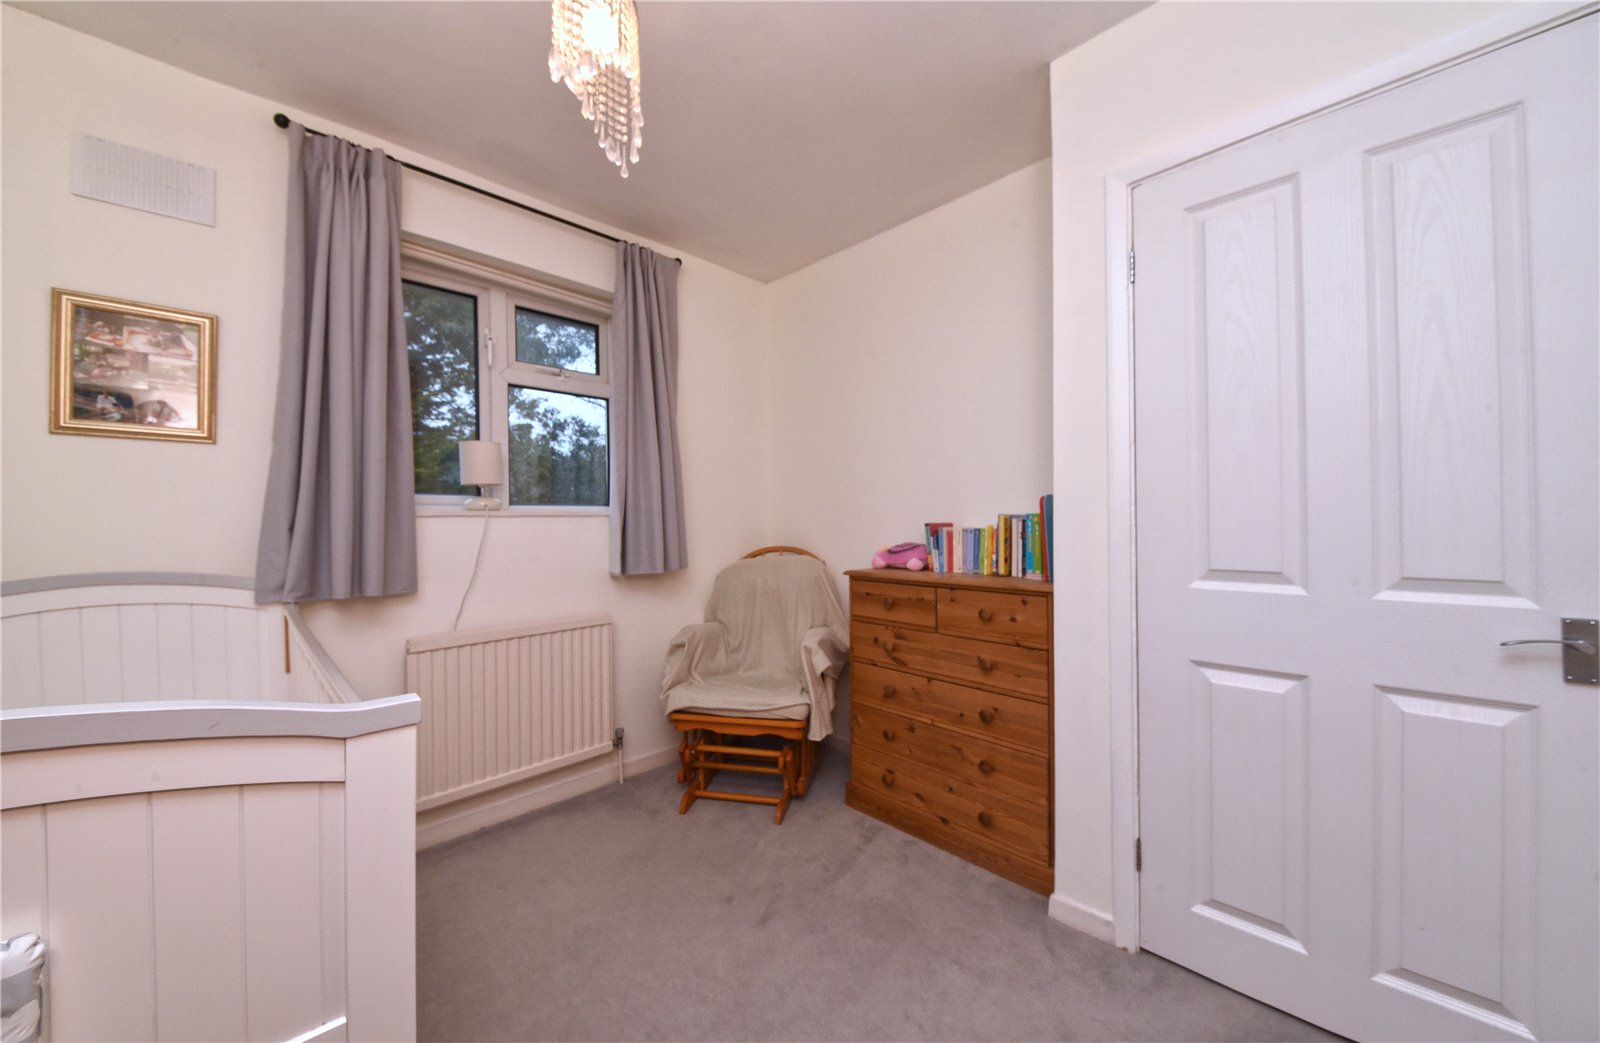 3 bed house for sale in Edgware, HA8 8XT  - Property Image 6